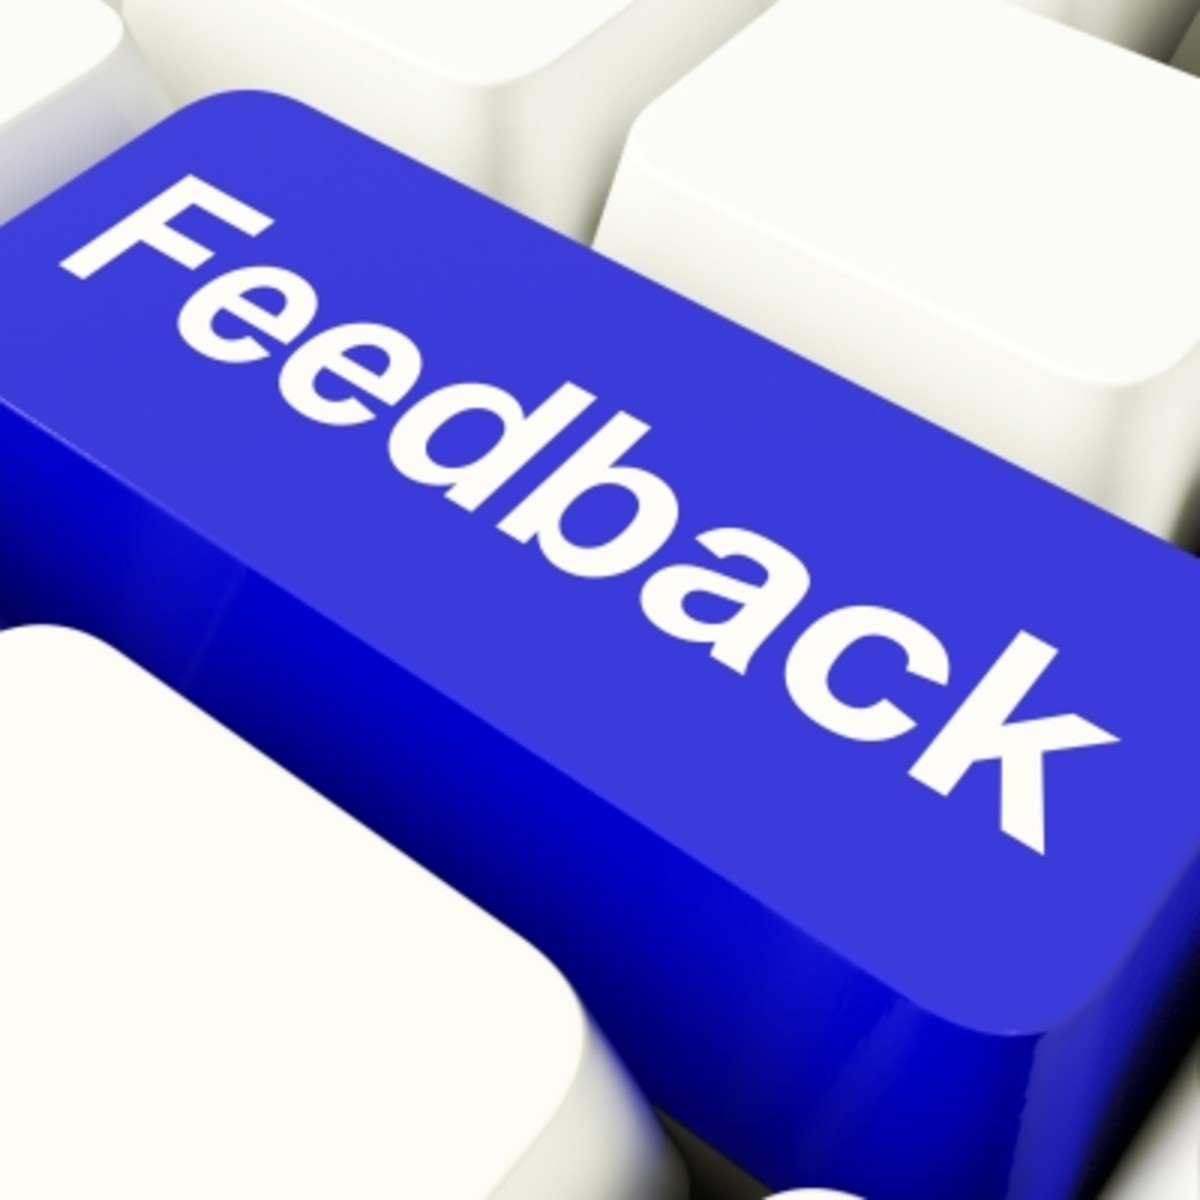 What feedback system do you have?